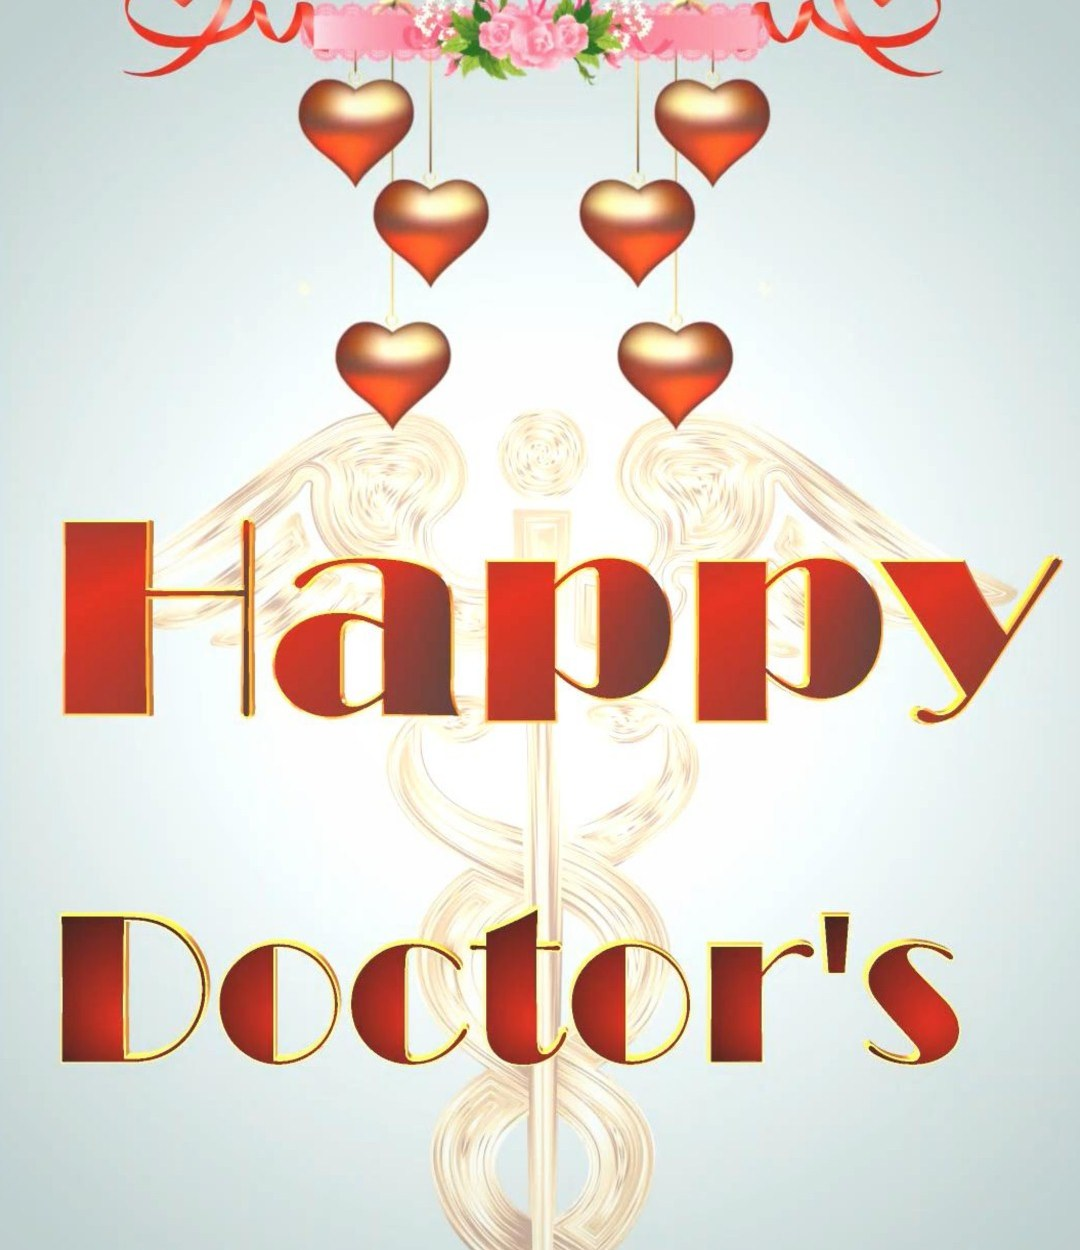 Greetings Image of Happy Doctors Day 2021 Wishes Video